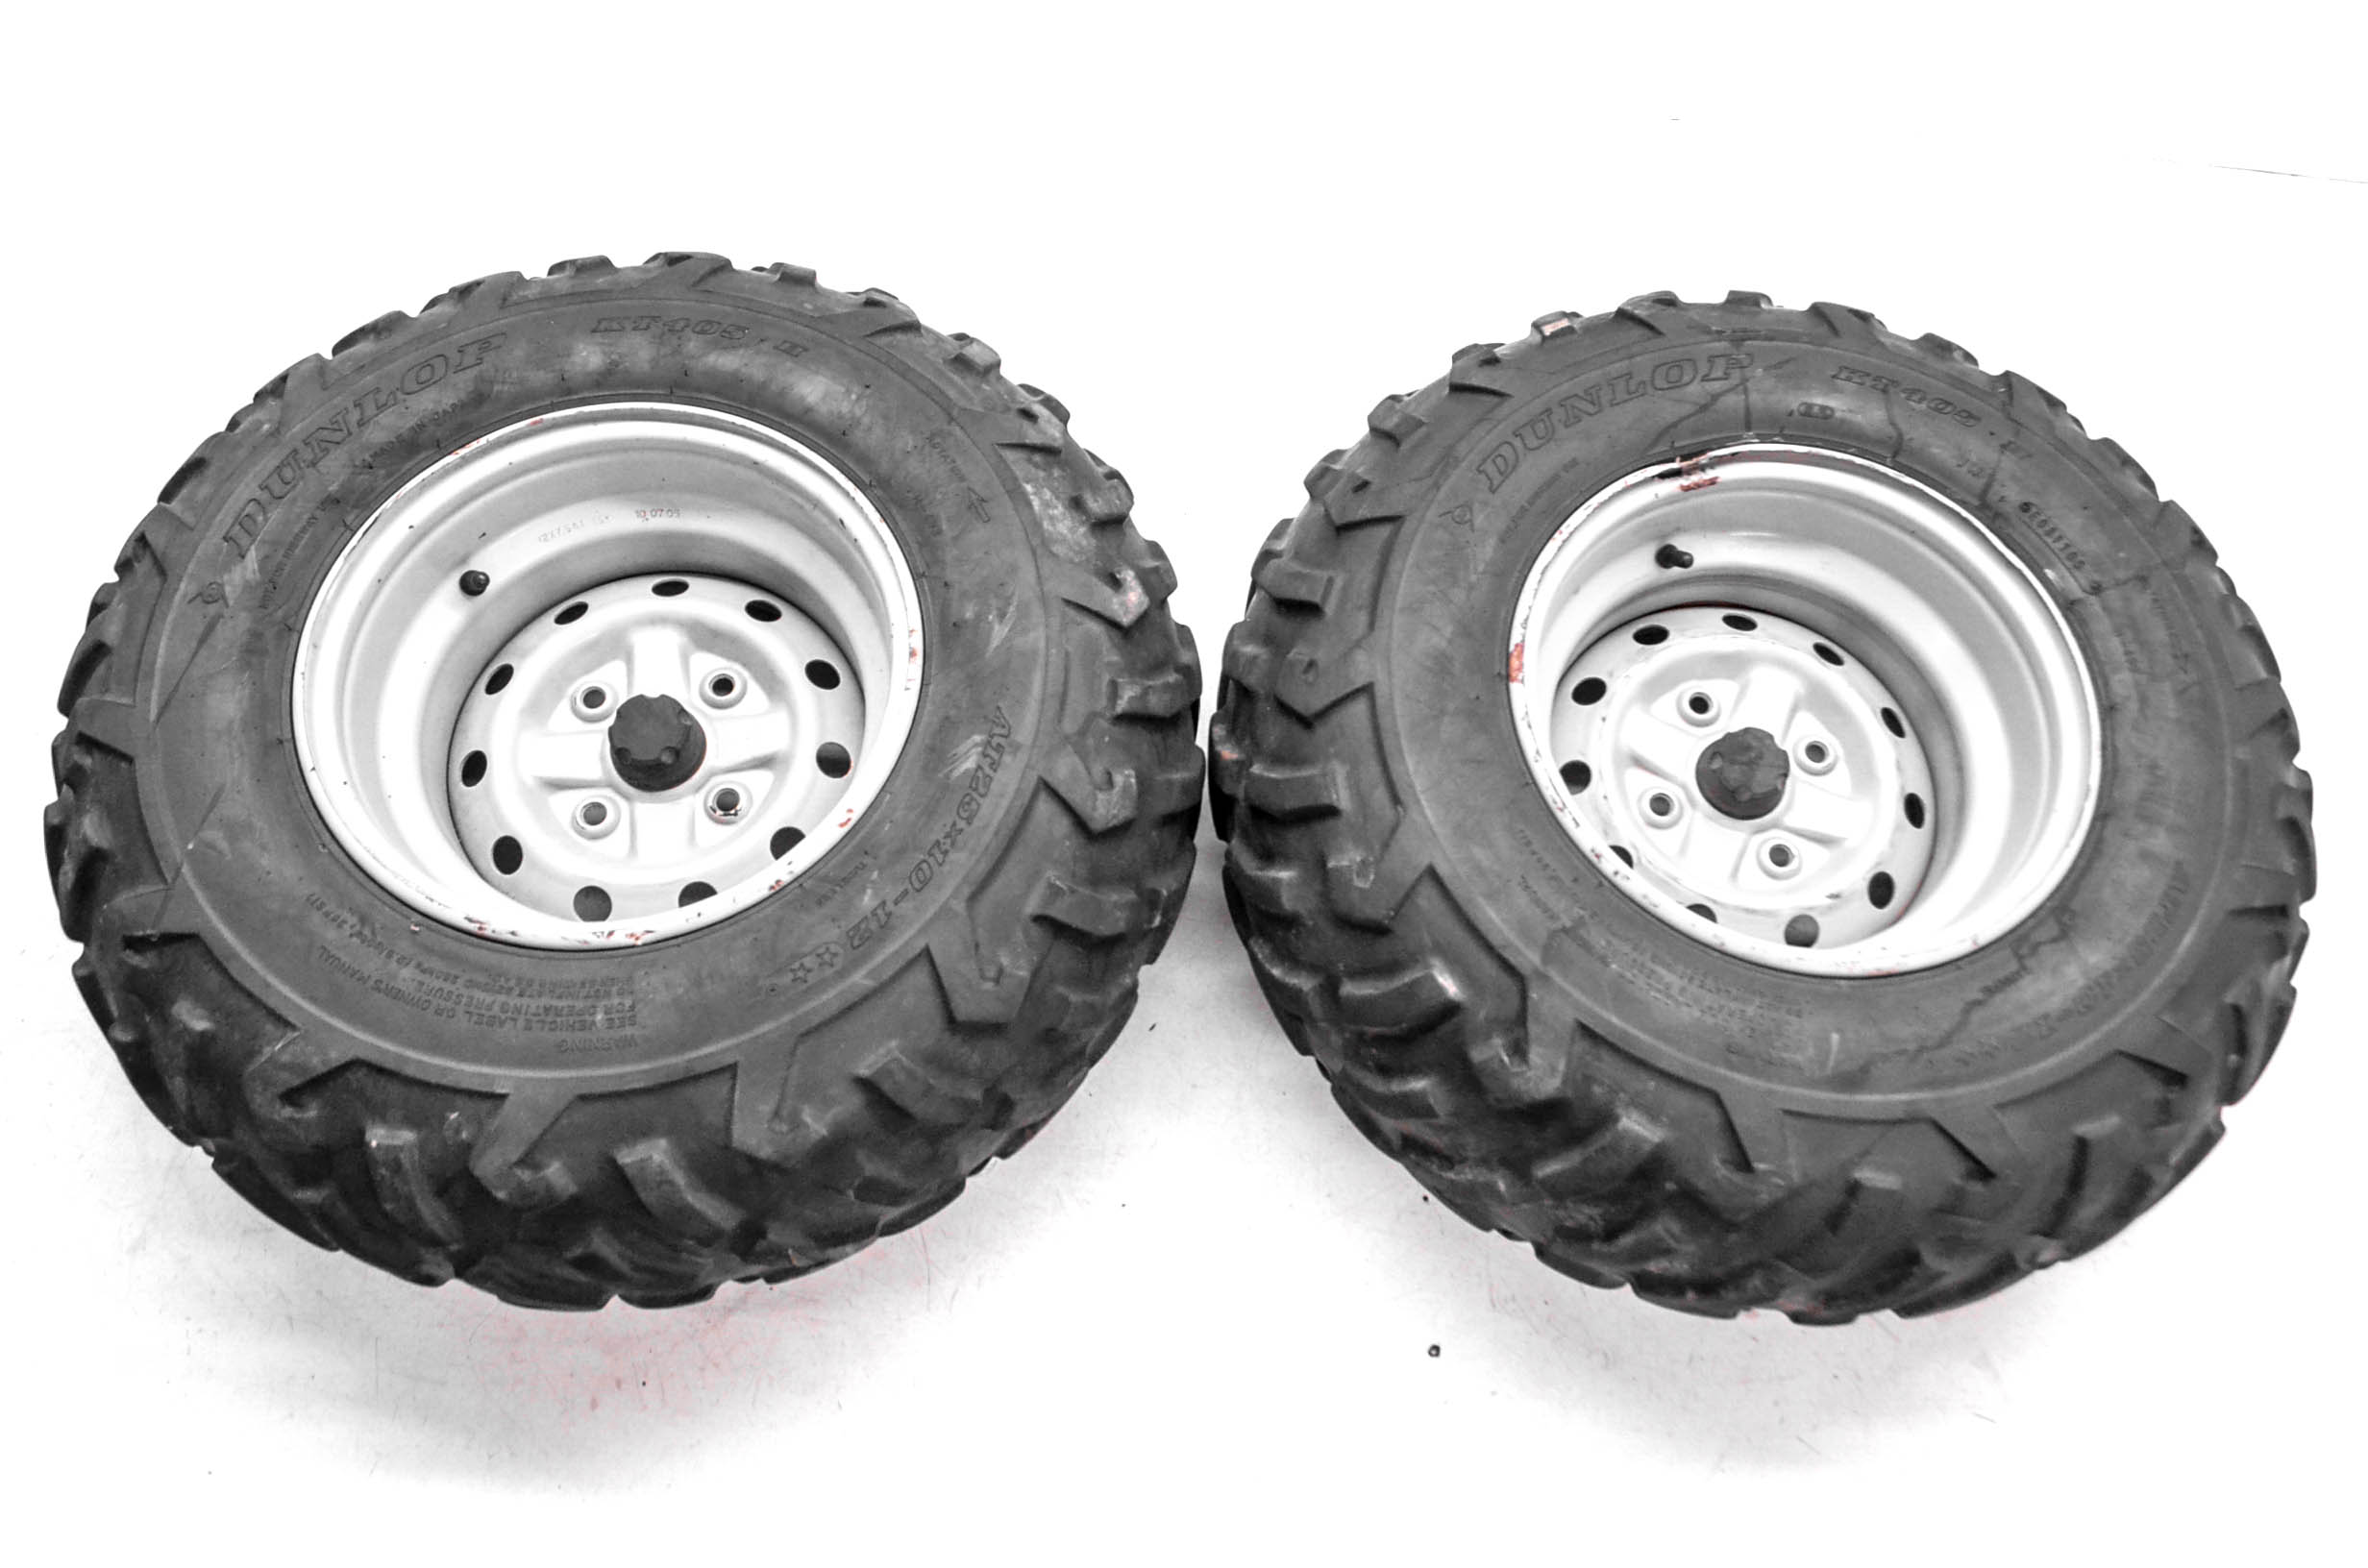 06 Suzuki Eiger 400 4x4 Rear Wheels Rims  U0026 Tires 25x10